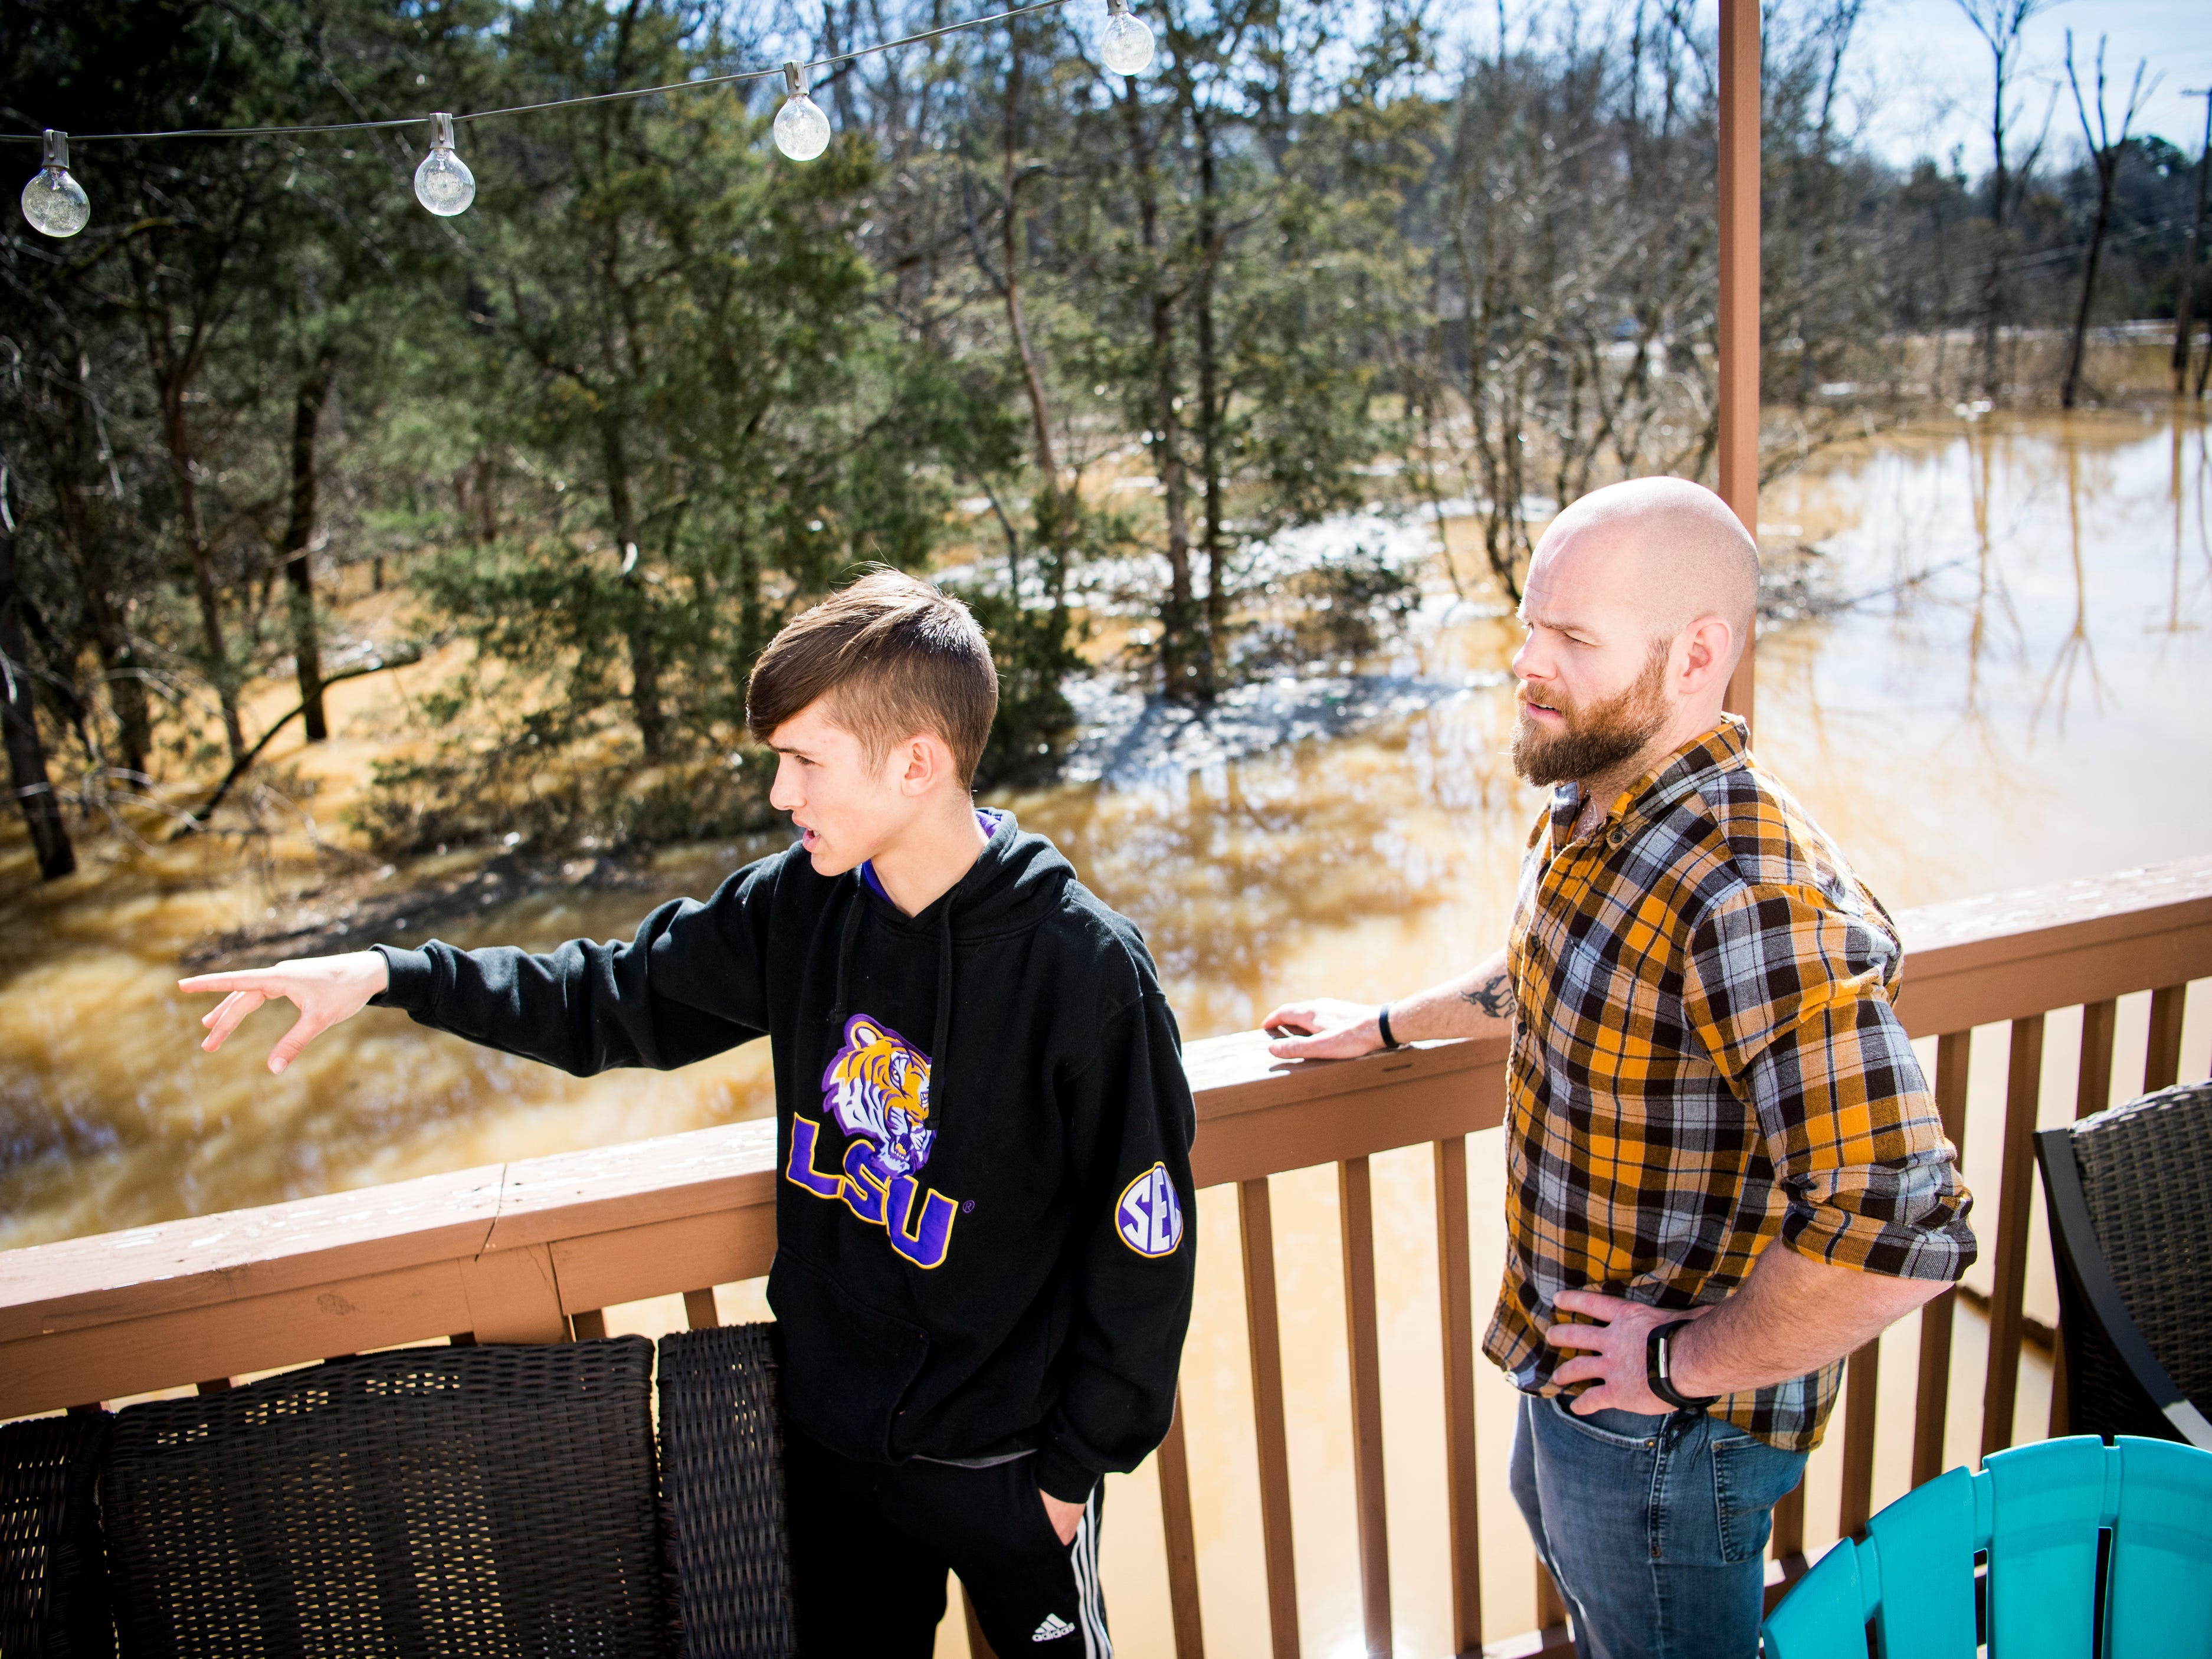 Caleb Bourque, left, and Jeff Macklin point out how high water had gotten in their backyard from their back deck on Monday, February 25, 2019. Bourque and Macklin live in the Lennox Place subdivision off of Ebenezer Road in Knoxville, and parts of Ebenezer Road were still under several feet of water on Monday afternoon.